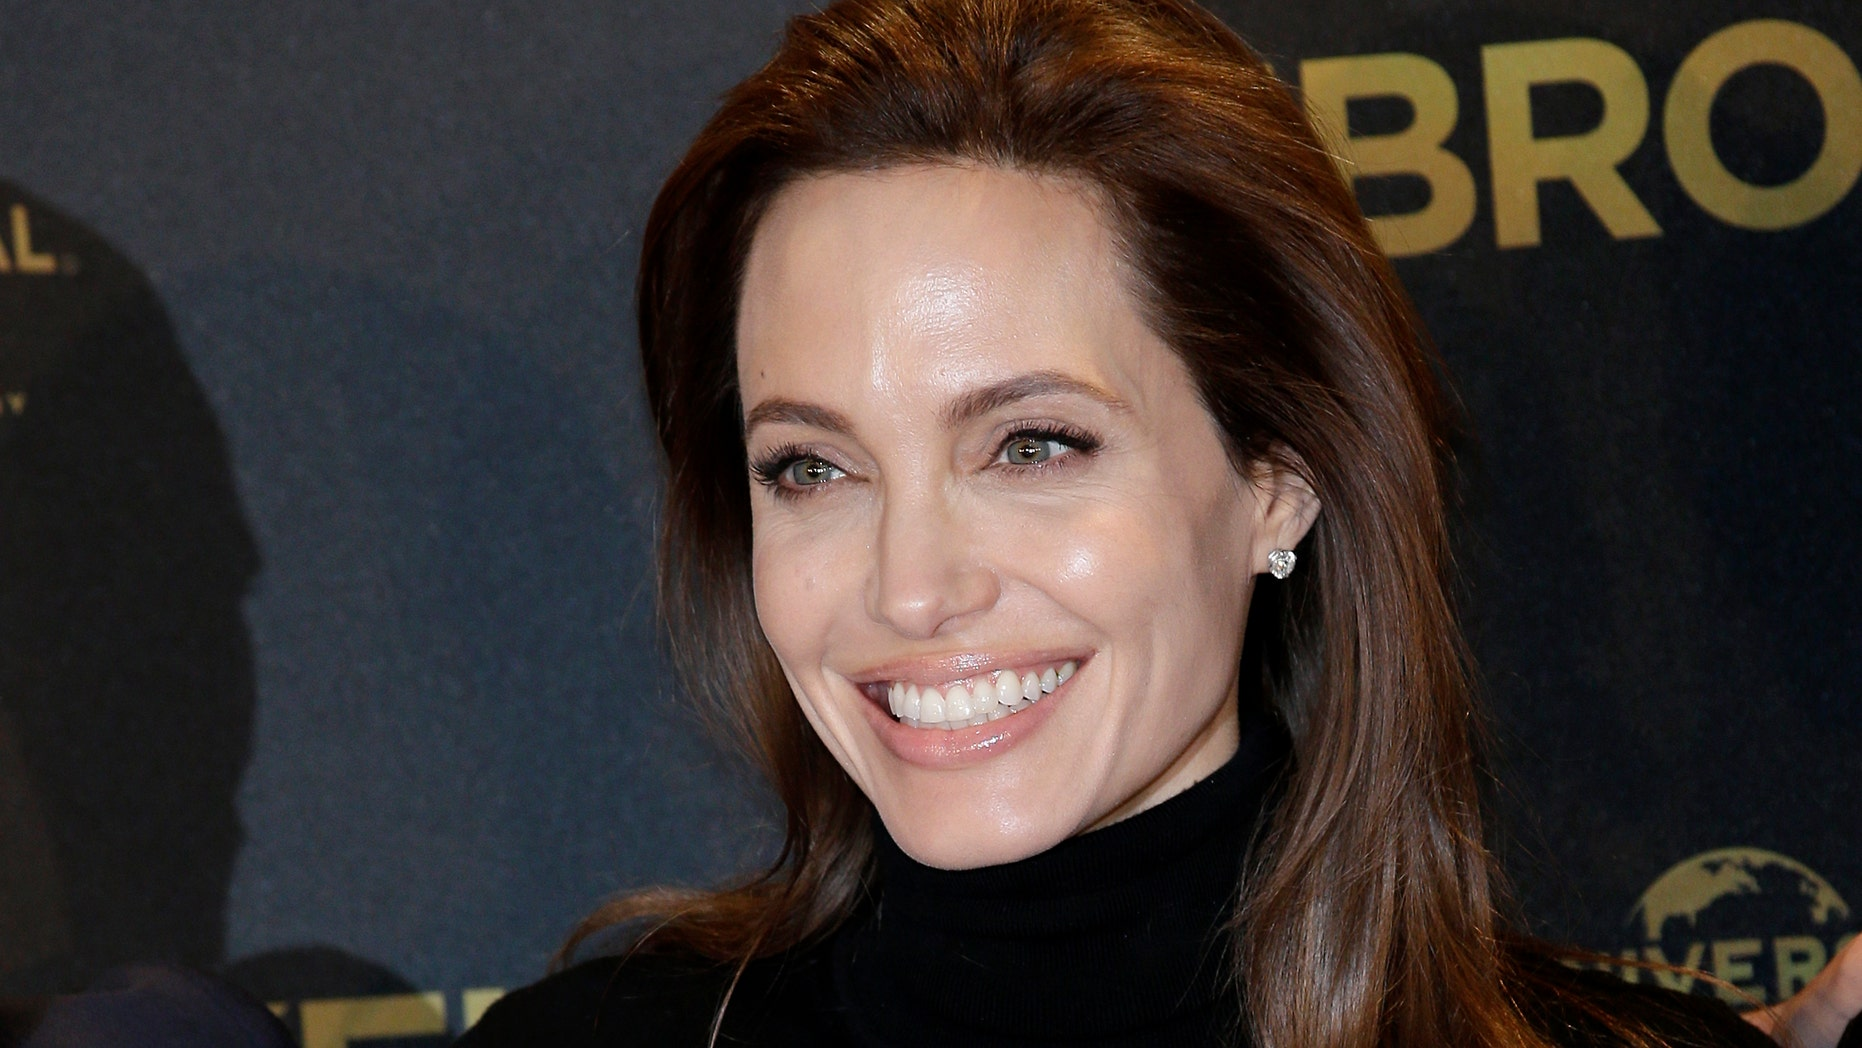 """Nov. 27, 2014. Director Angelina Jolie poses for photographers during a photo call for her film """"Unbroken"""" in Berlin, Germany."""